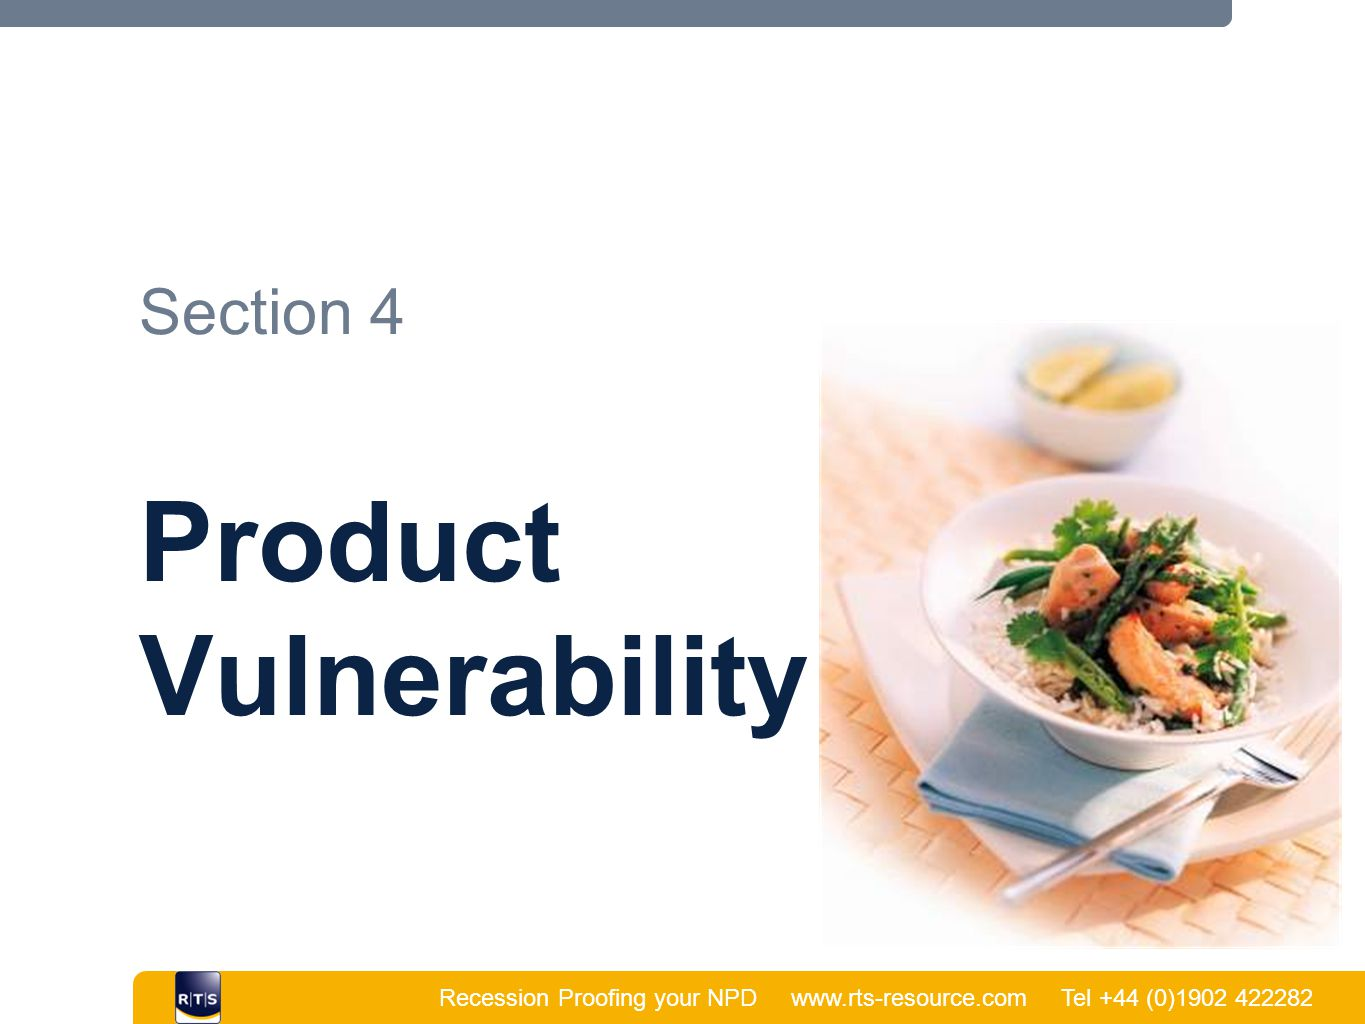 Recession Proofing your NPD www.rts-resource.com Tel +44 (0)1902 422282 | Section 4 Product Vulnerability